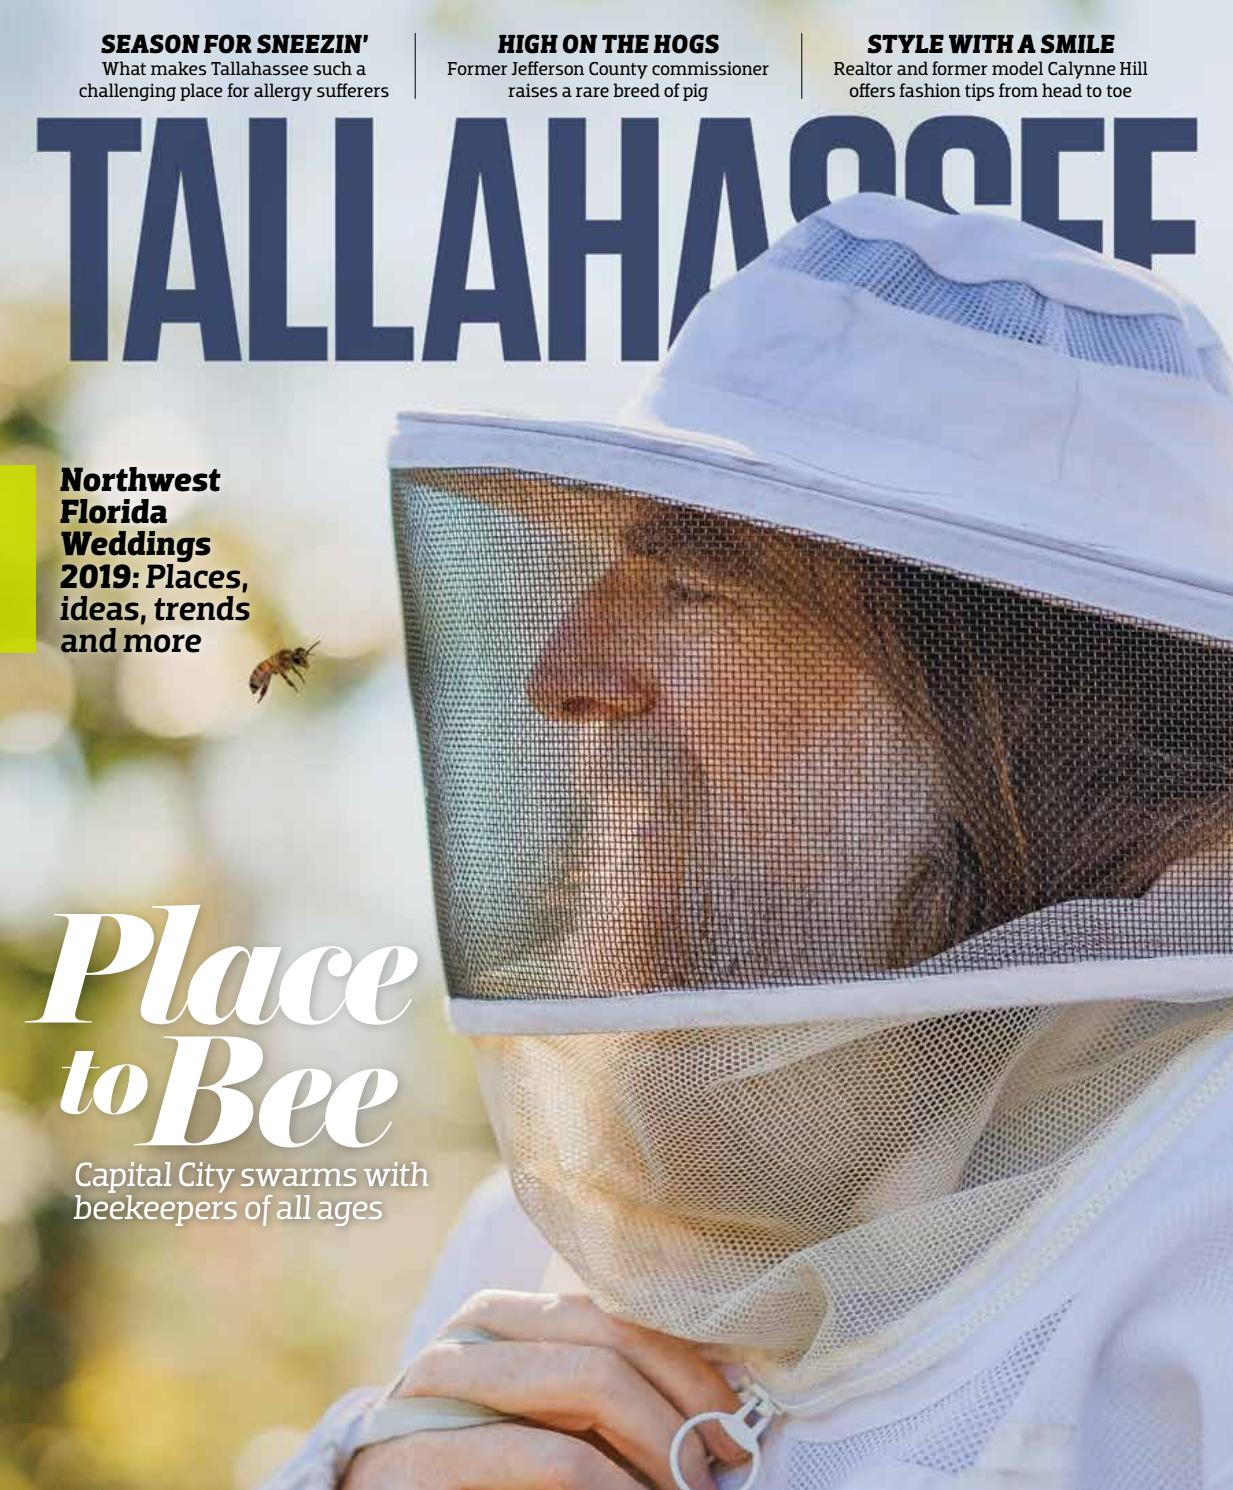 14a0538bed15f Tallahassee Magazine March - April 2019 by Rowland Publishing